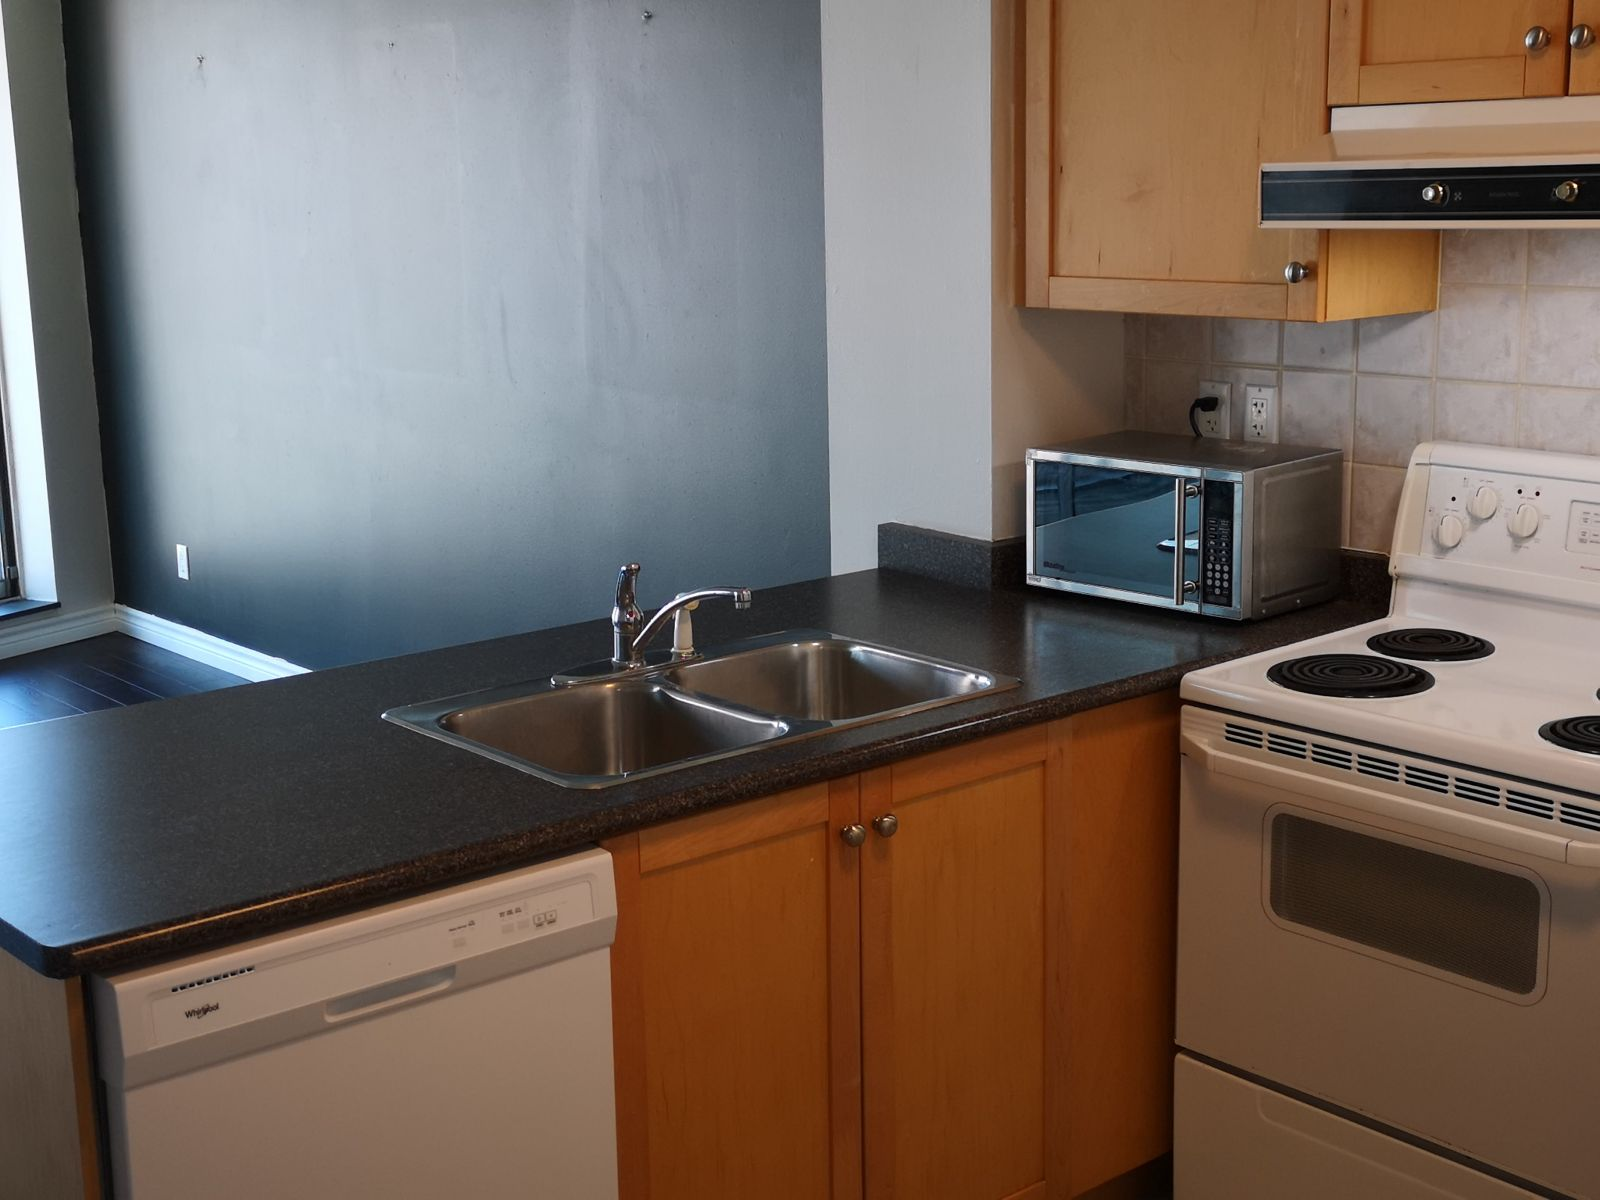 650 Queens Quay W unit 305 Toronto- Kitchen-living